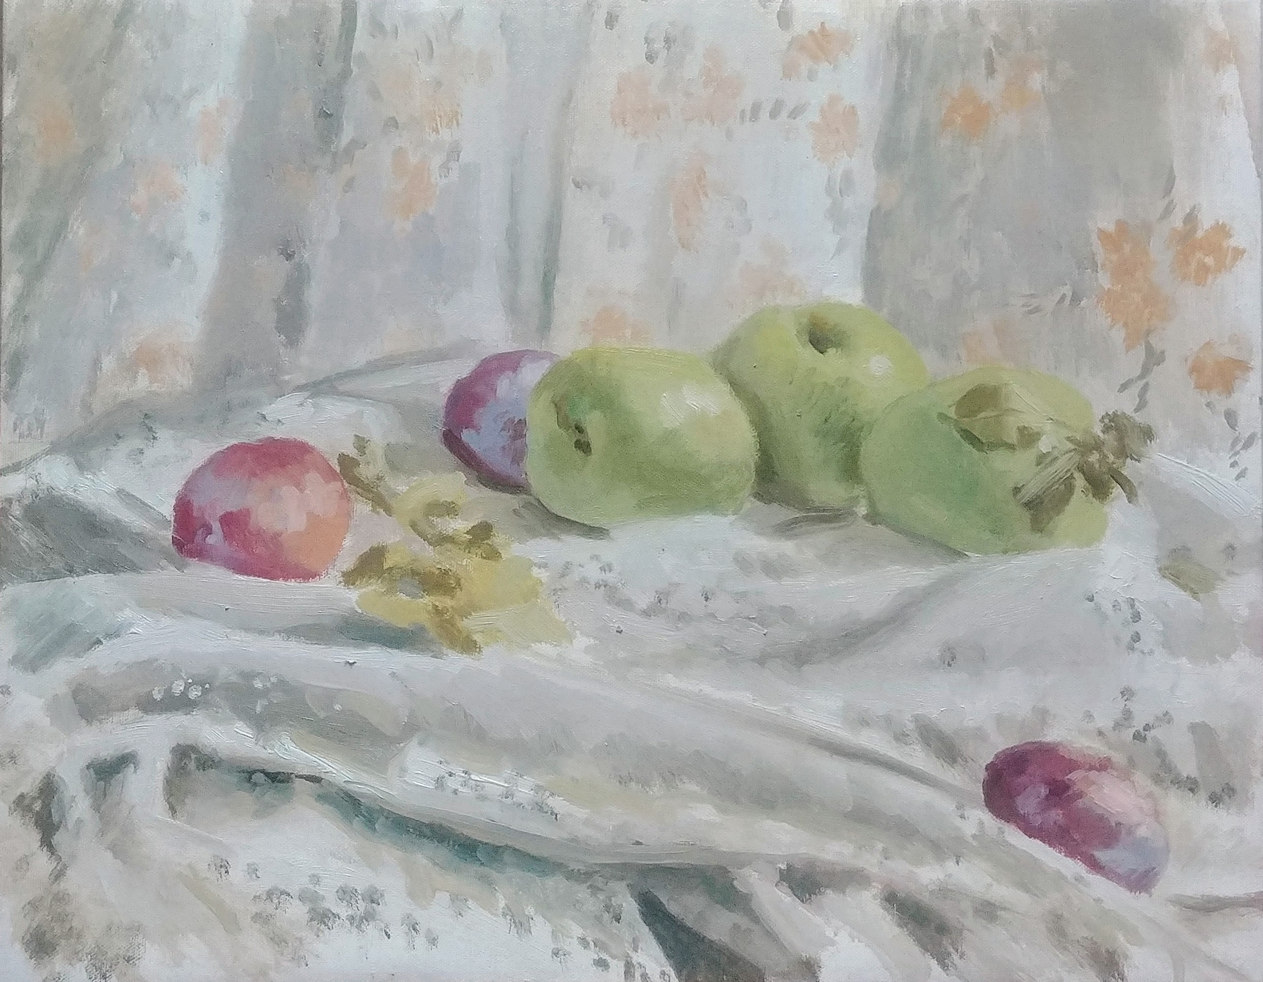 Apples, Plums, and lace